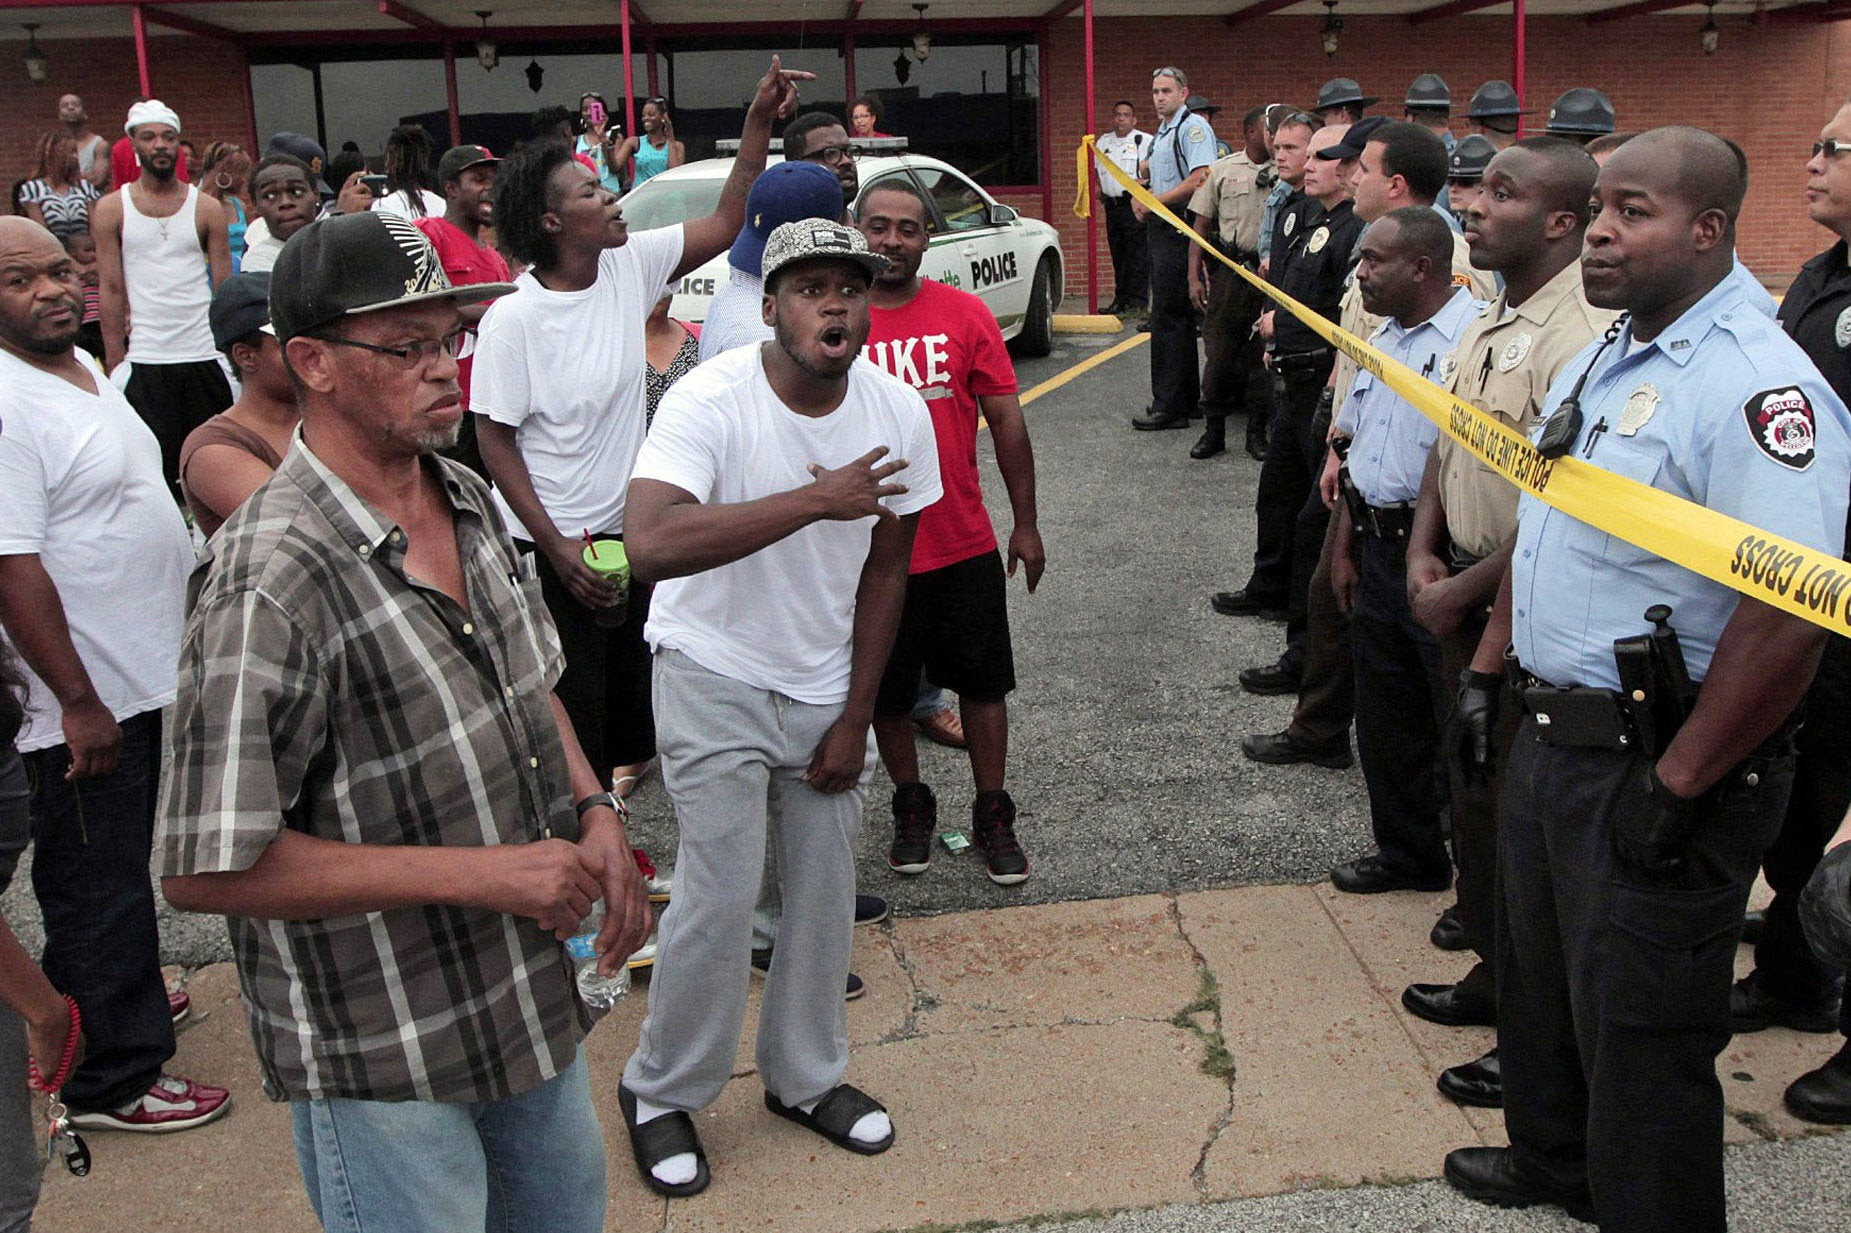 Police officer who shot unarmed black teen says he feared